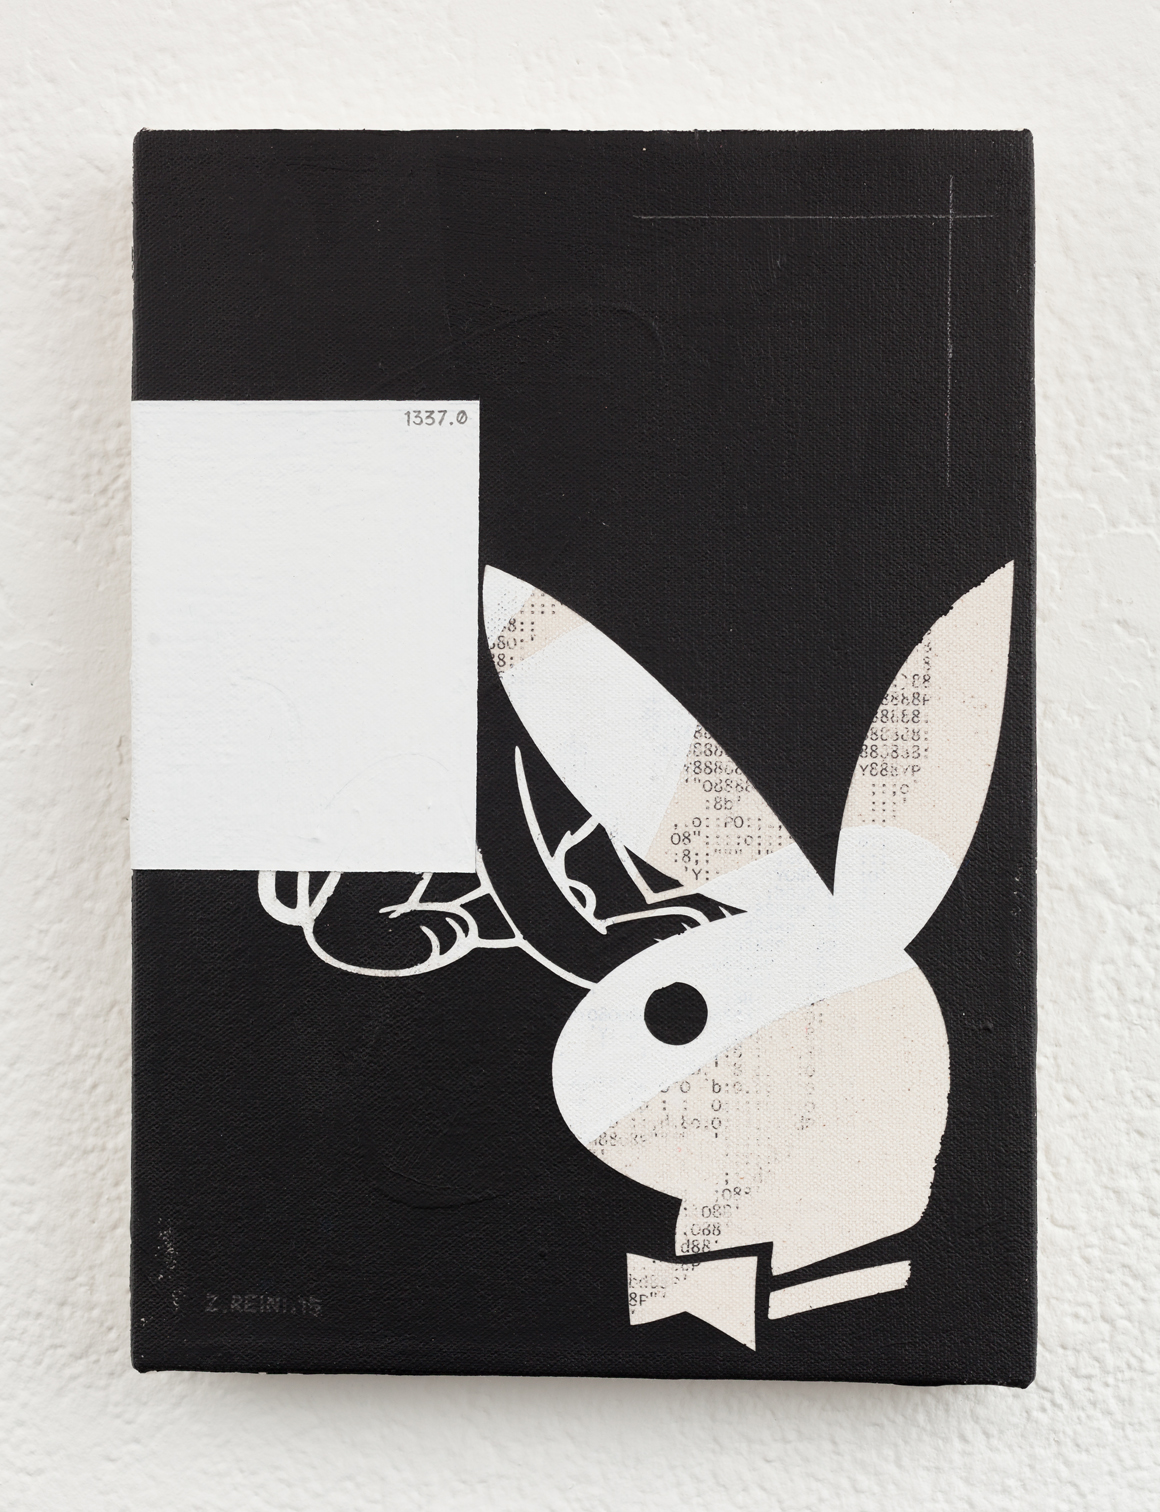 "<p><span class=""name"">Zach Reini</span><br><em>Playboy</em><span class='media'>Latex, ink transfer, matte medium, graphite on canvas</span>28 x 20.3cm 